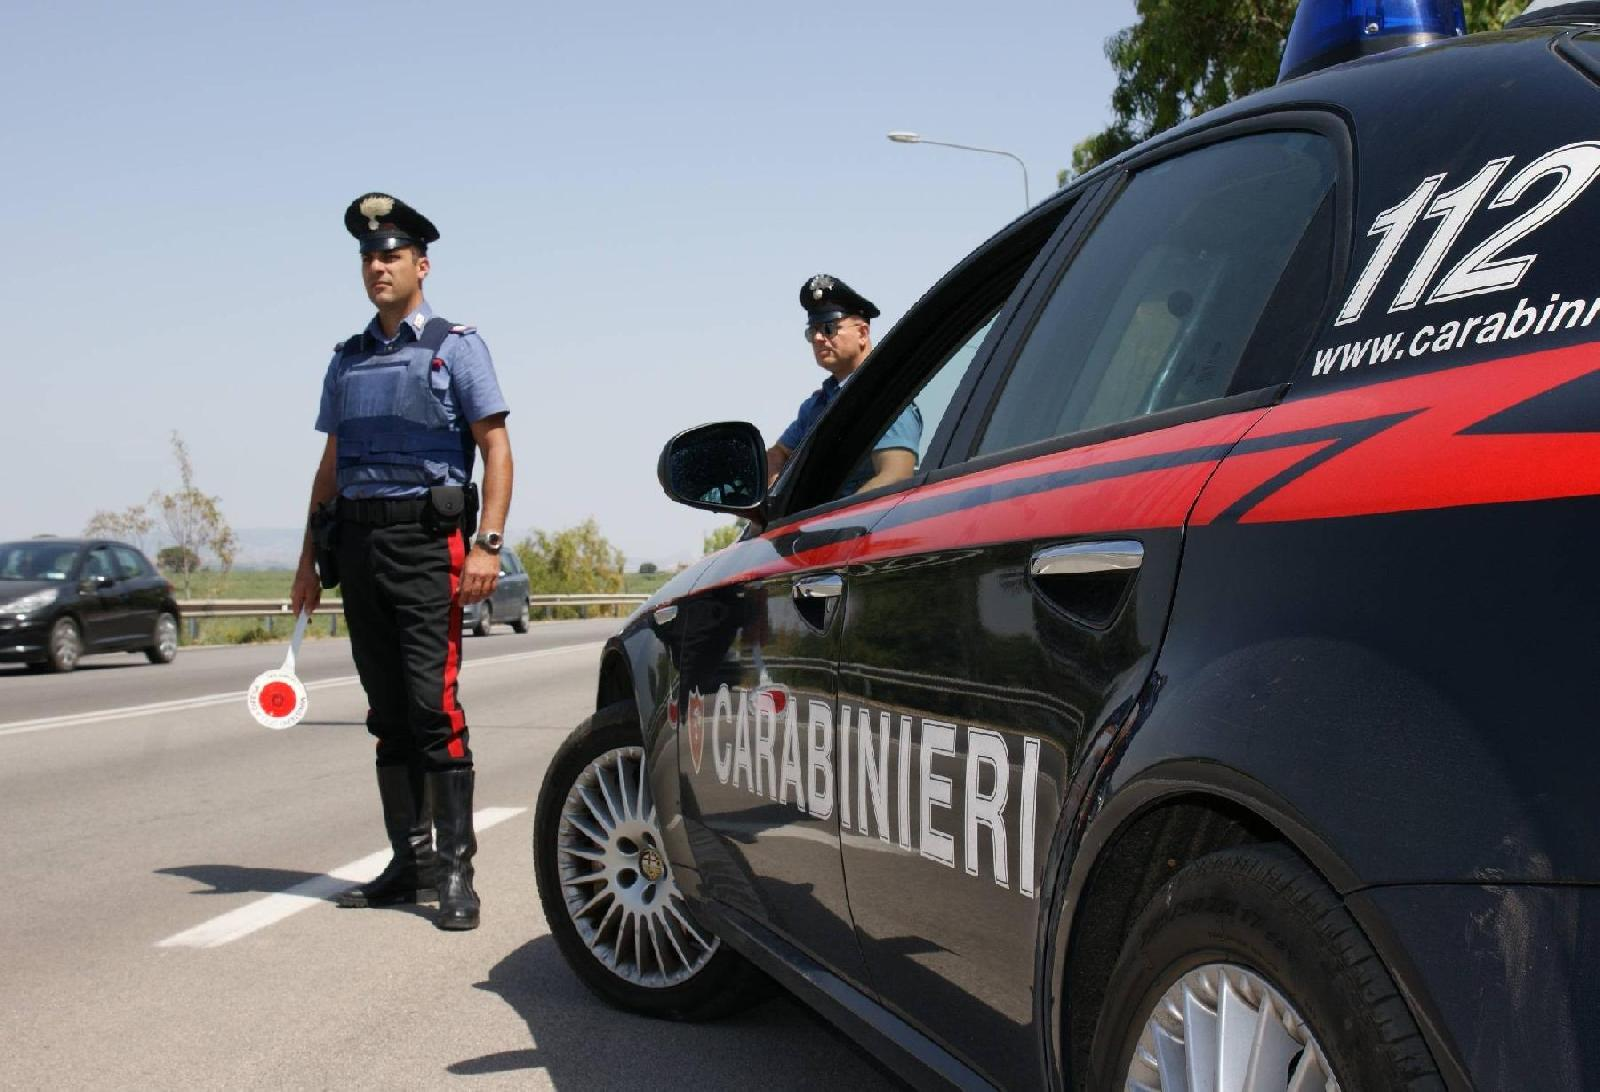 Camorra, mafia e stalking: bloccati due pericolosi criminali